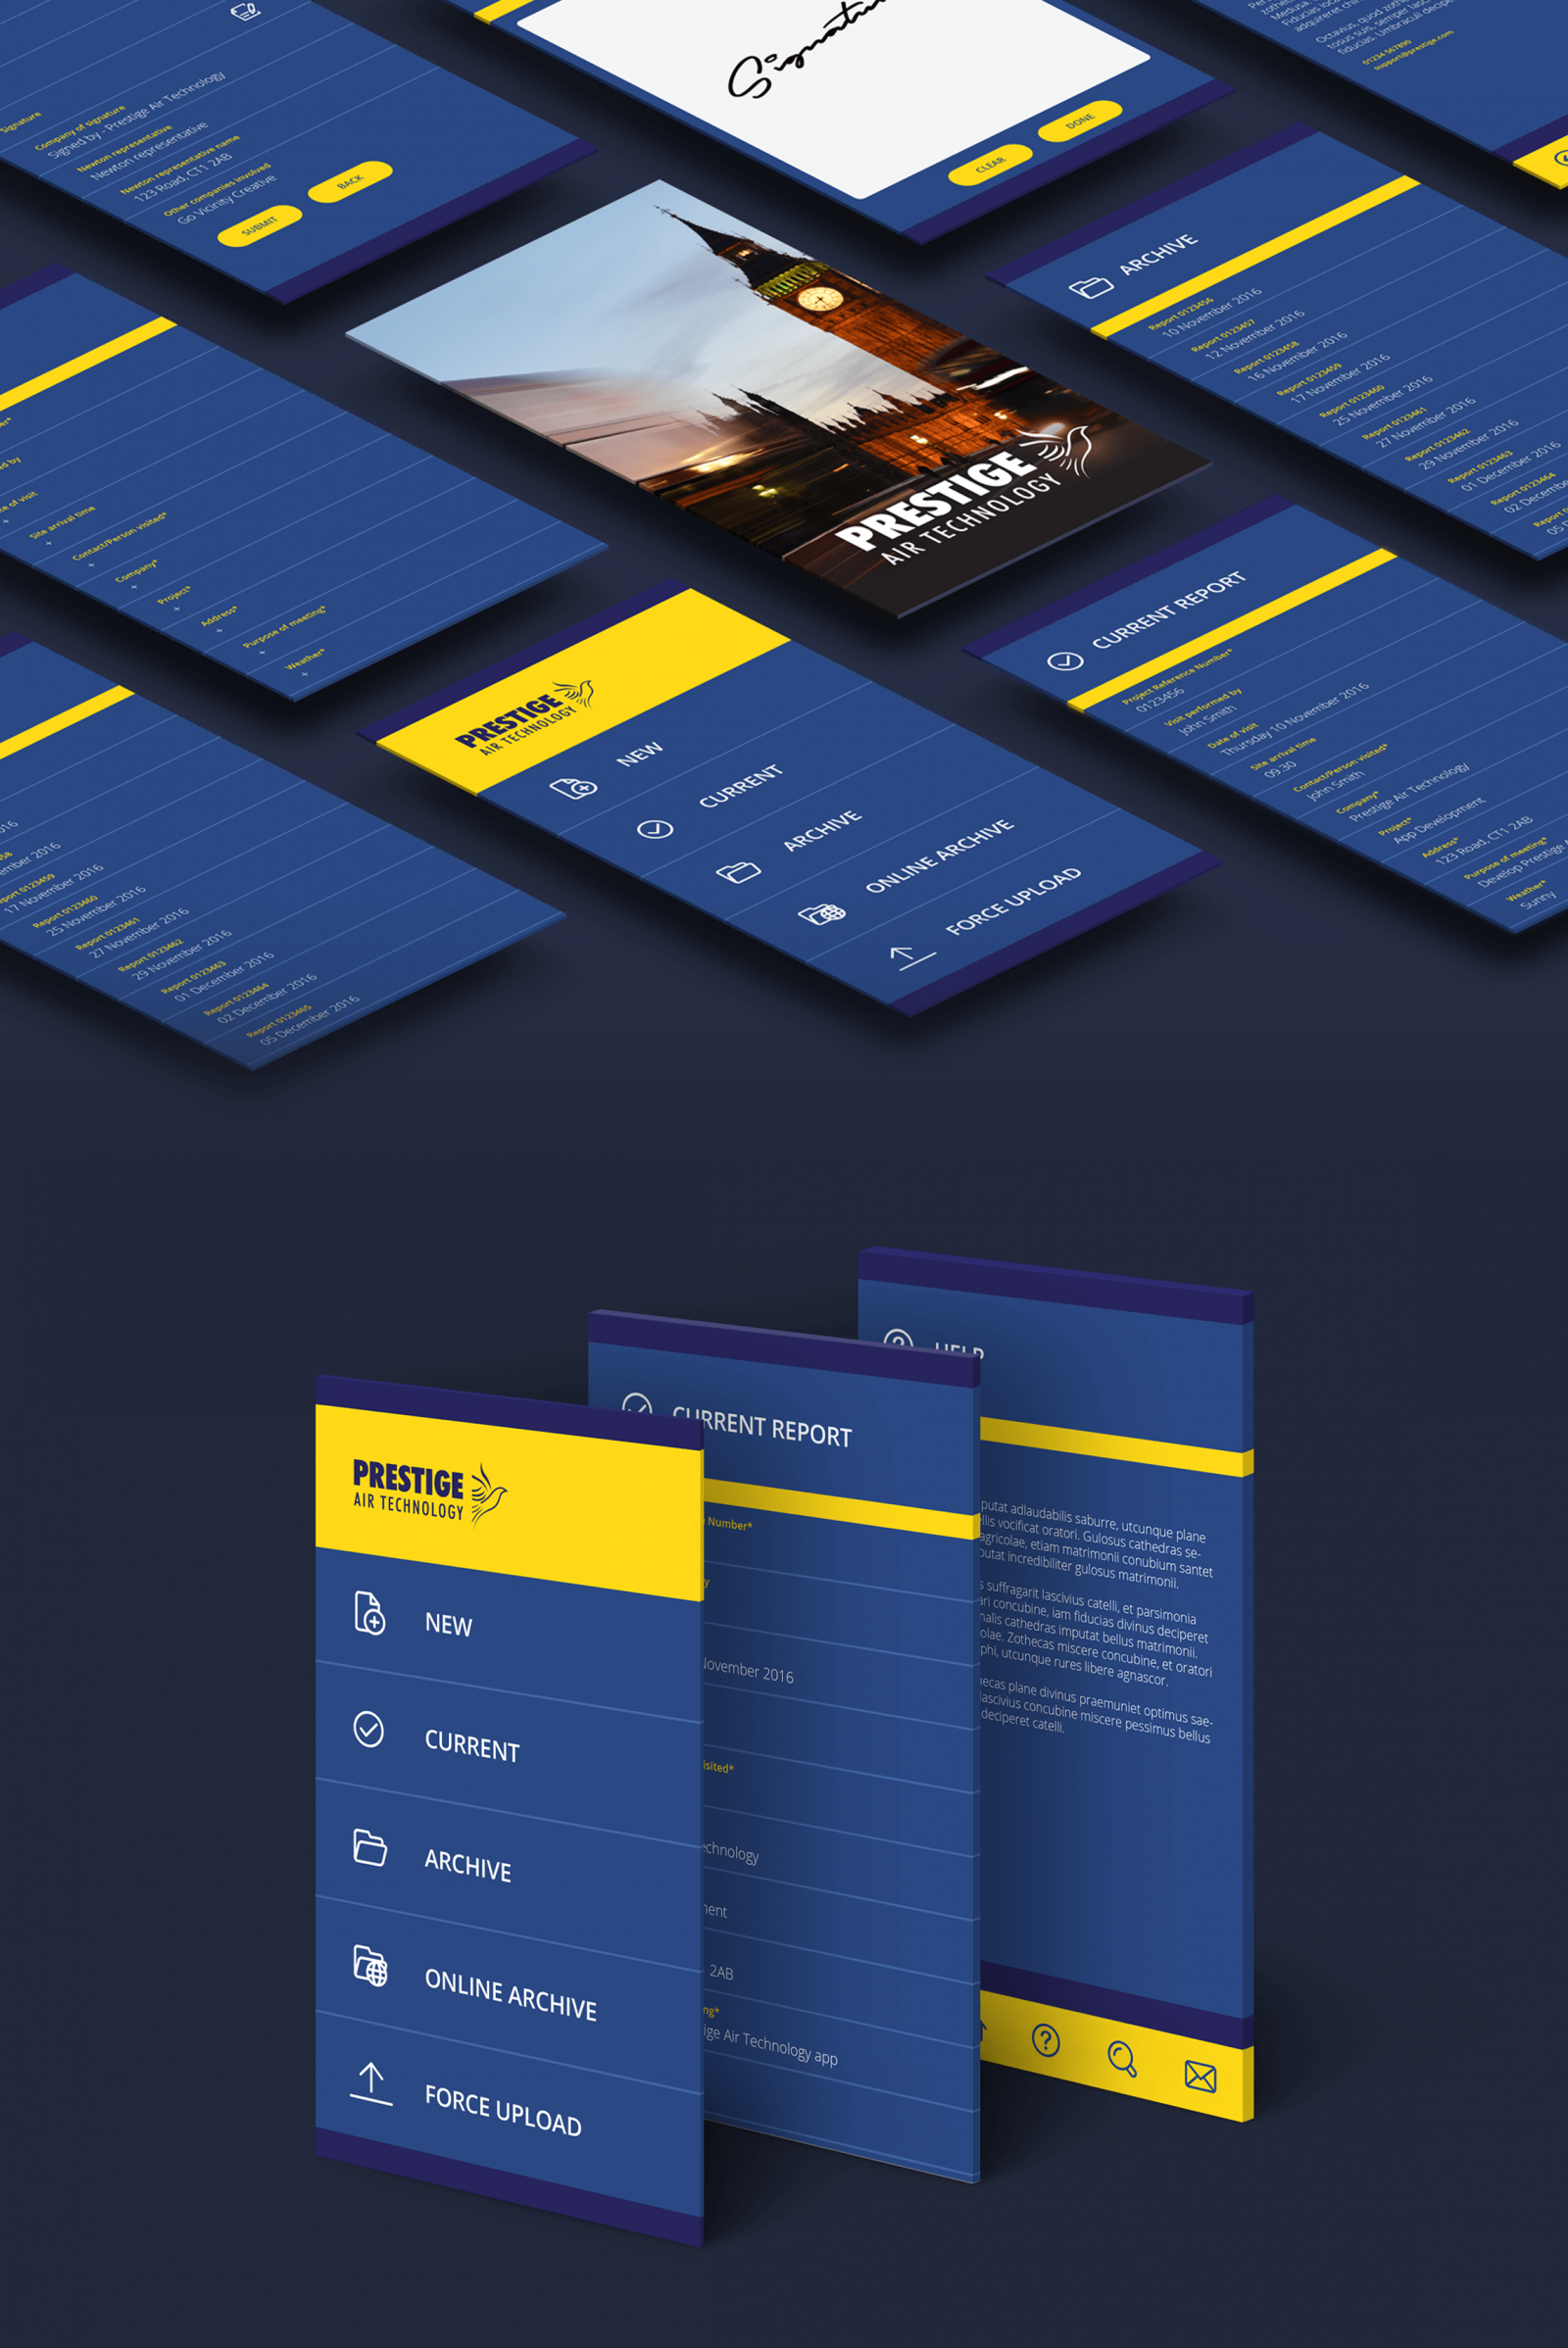 Prestige-app-ui-design-agency-graphic-design-canterbury.png